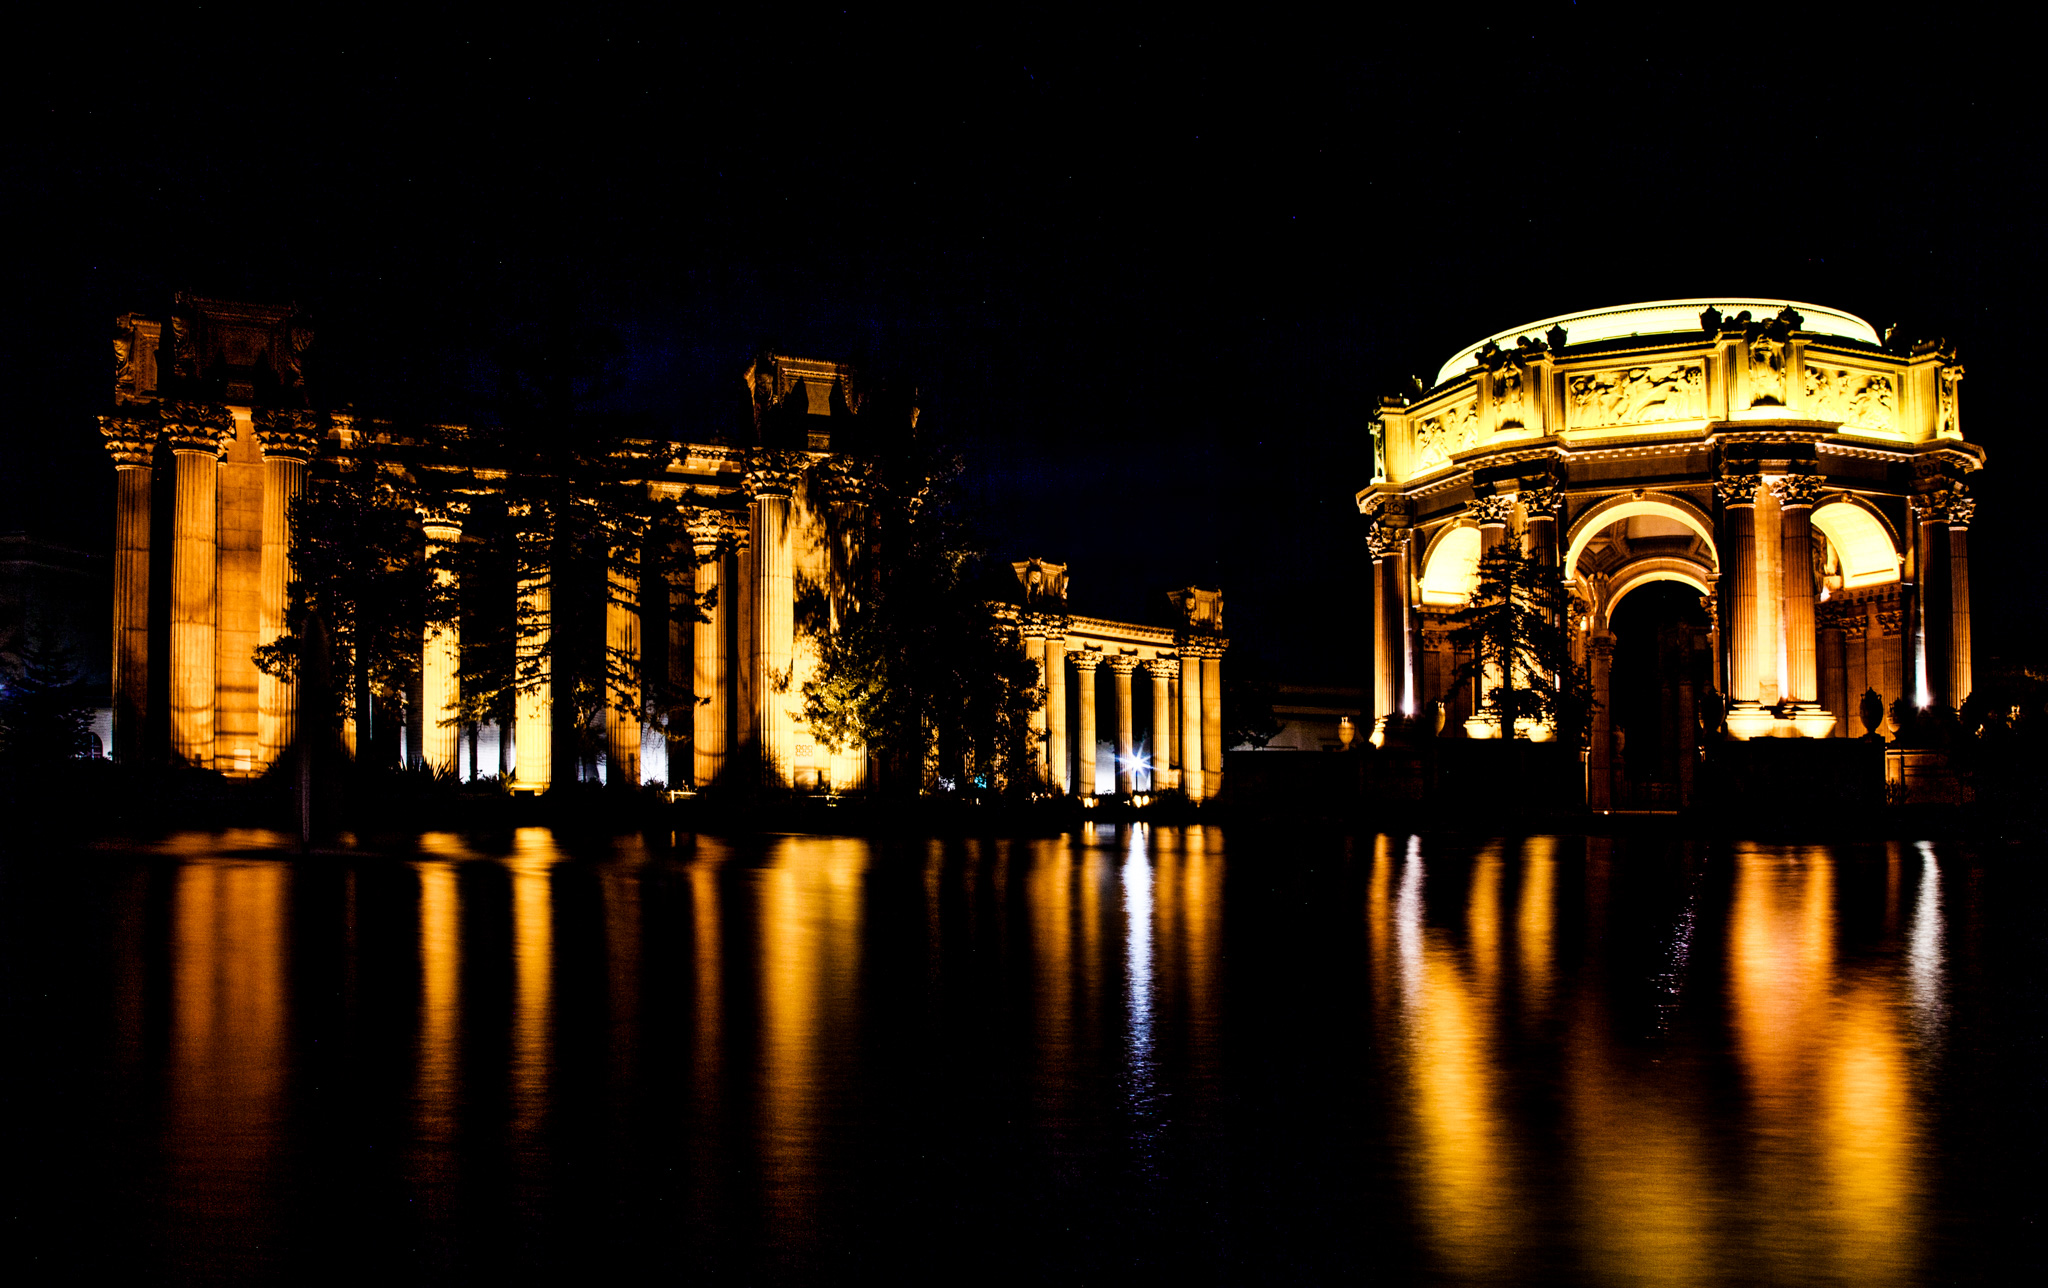 The  Palace of Fine Arts in the  Marina District of  San Francisco, California , is a monumental structure originally constructed for the  1915 Panama-Pacific Exposition in order to exhibit works of art presented there. One of only a few surviving structures from the Exposition, it is still situated on its original site. It was rebuilt in 1965, and renovation of the lagoon, walkways, and a  seismic retrofit were completed in early 2009.  In addition to hosting art exhibitions, it remains a popular attraction for tourists and locals, and is a favorite location for weddings and wedding party photographs for couples throughout the  San Francisco Bay Area , and such an icon that a miniature replica of it was built in  Disney's California Adventure in  Anaheim . [